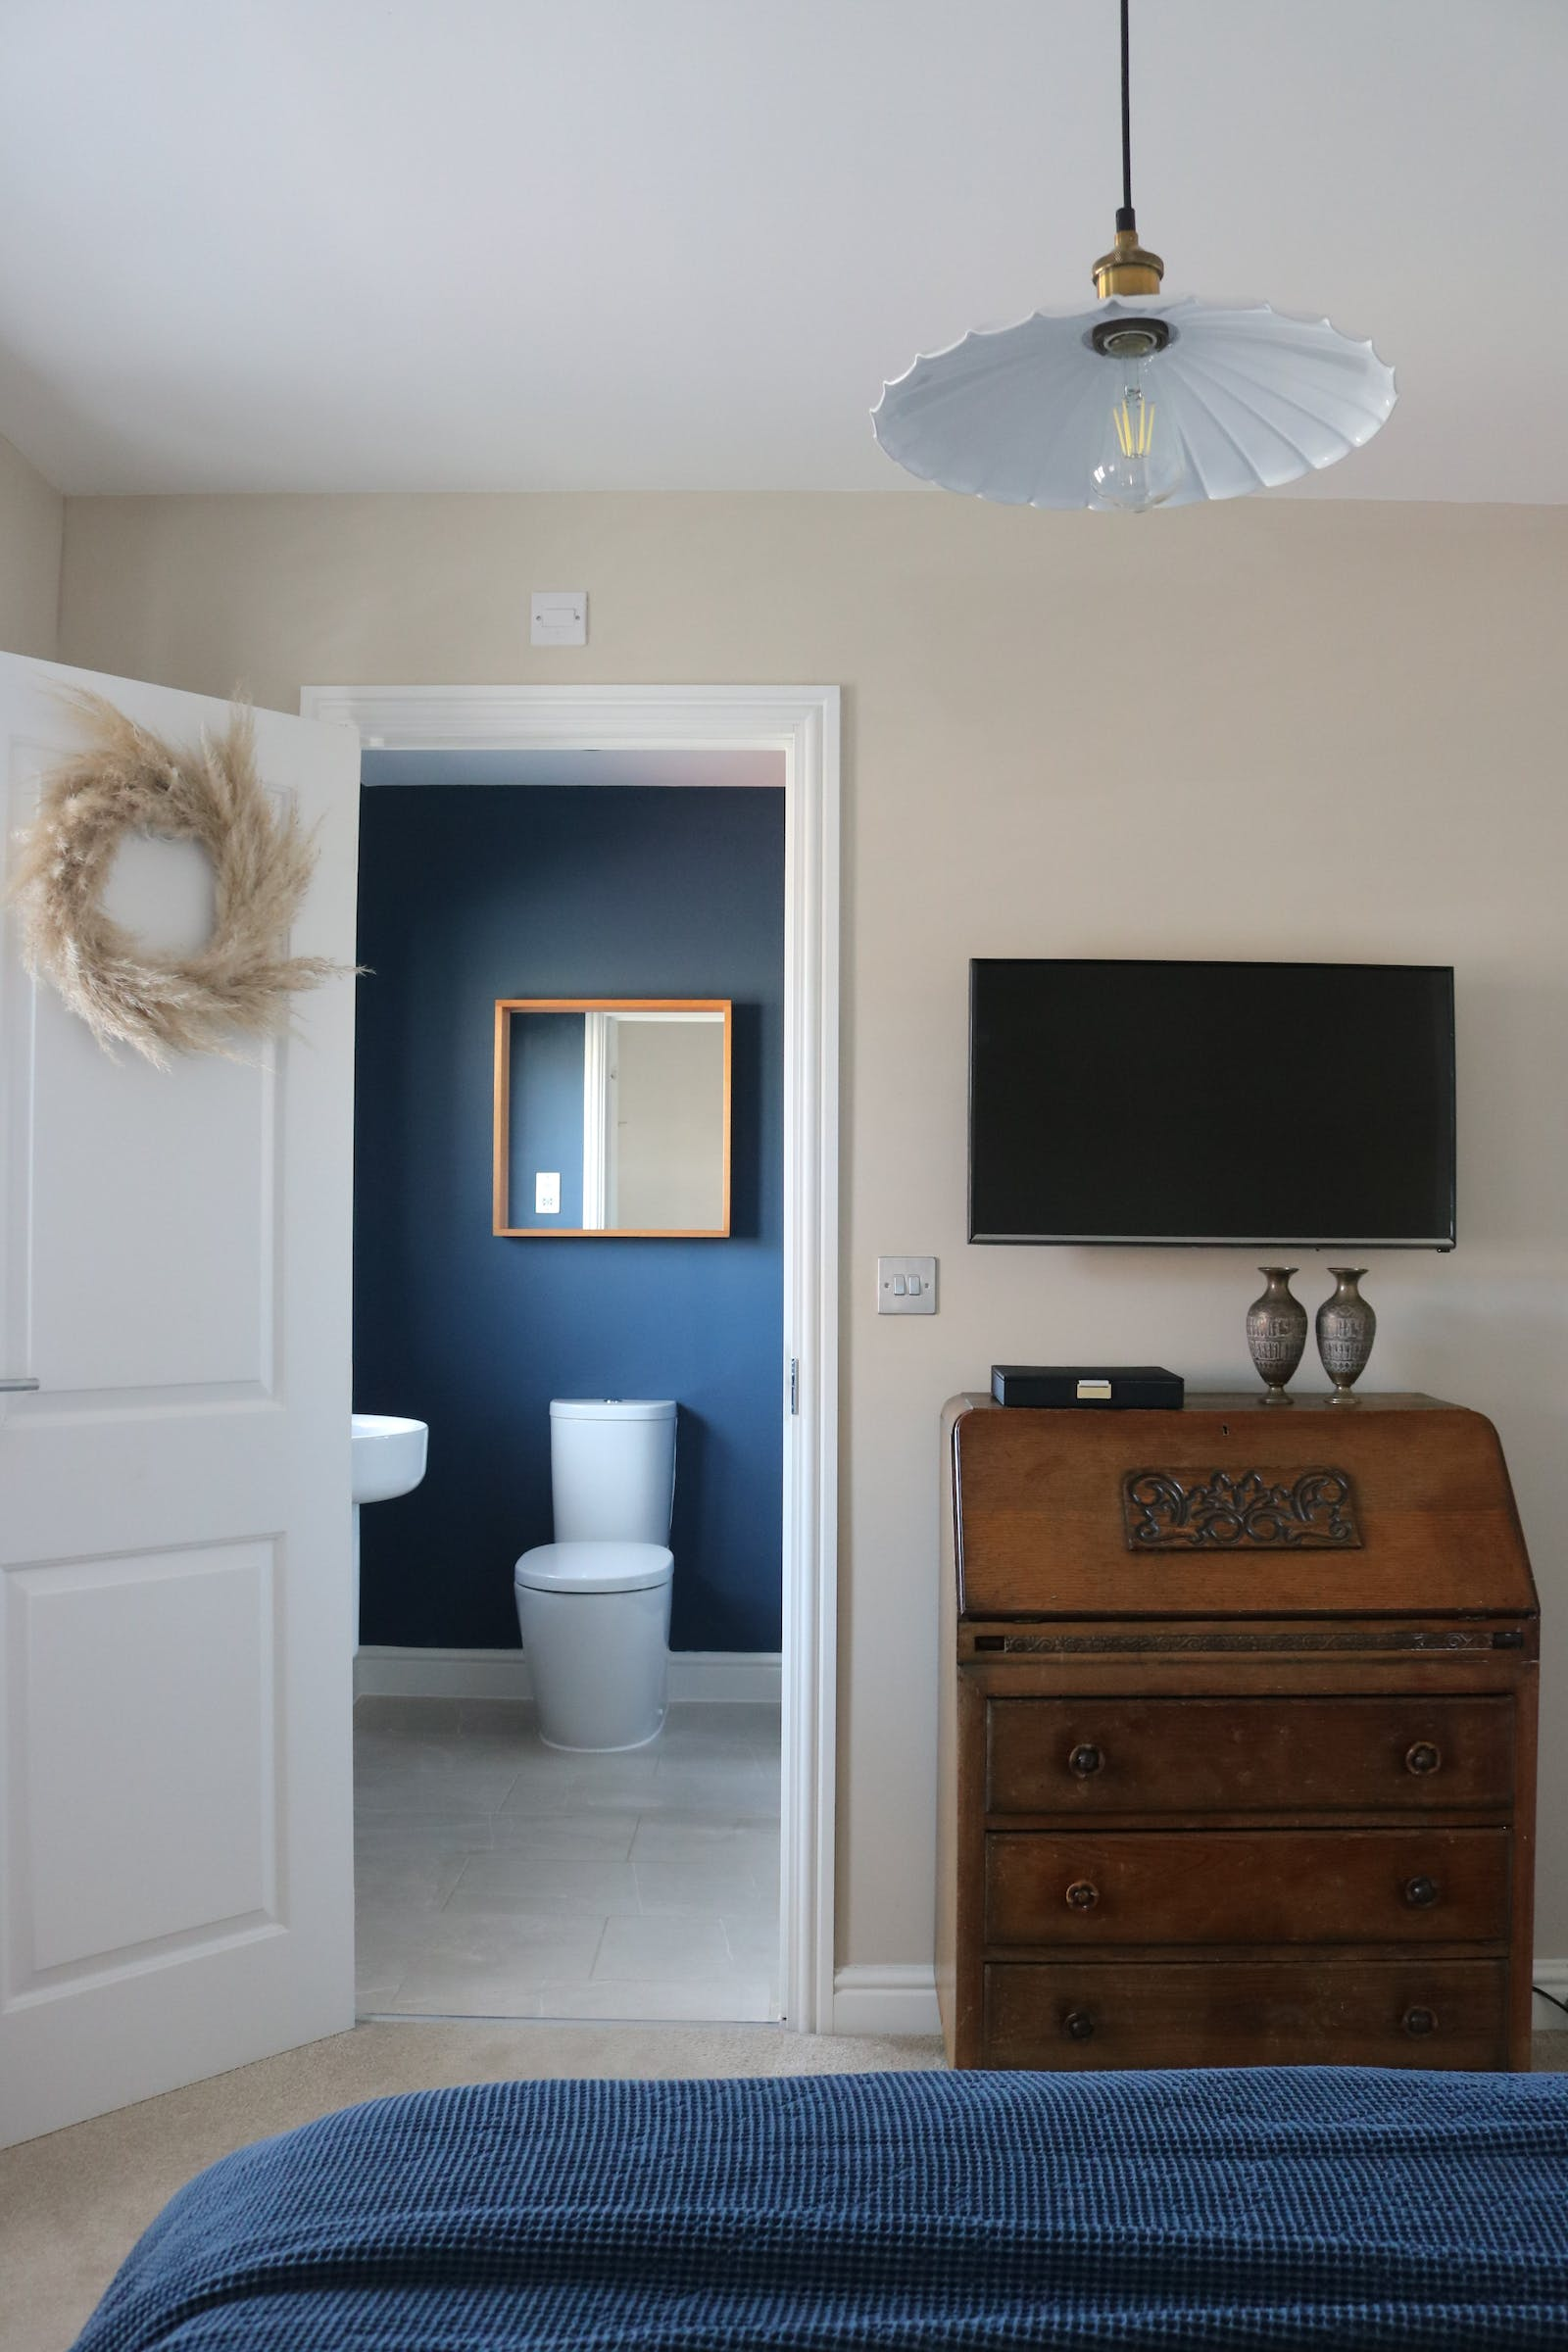 A view from a bedroom showing a blue-painted bathroom